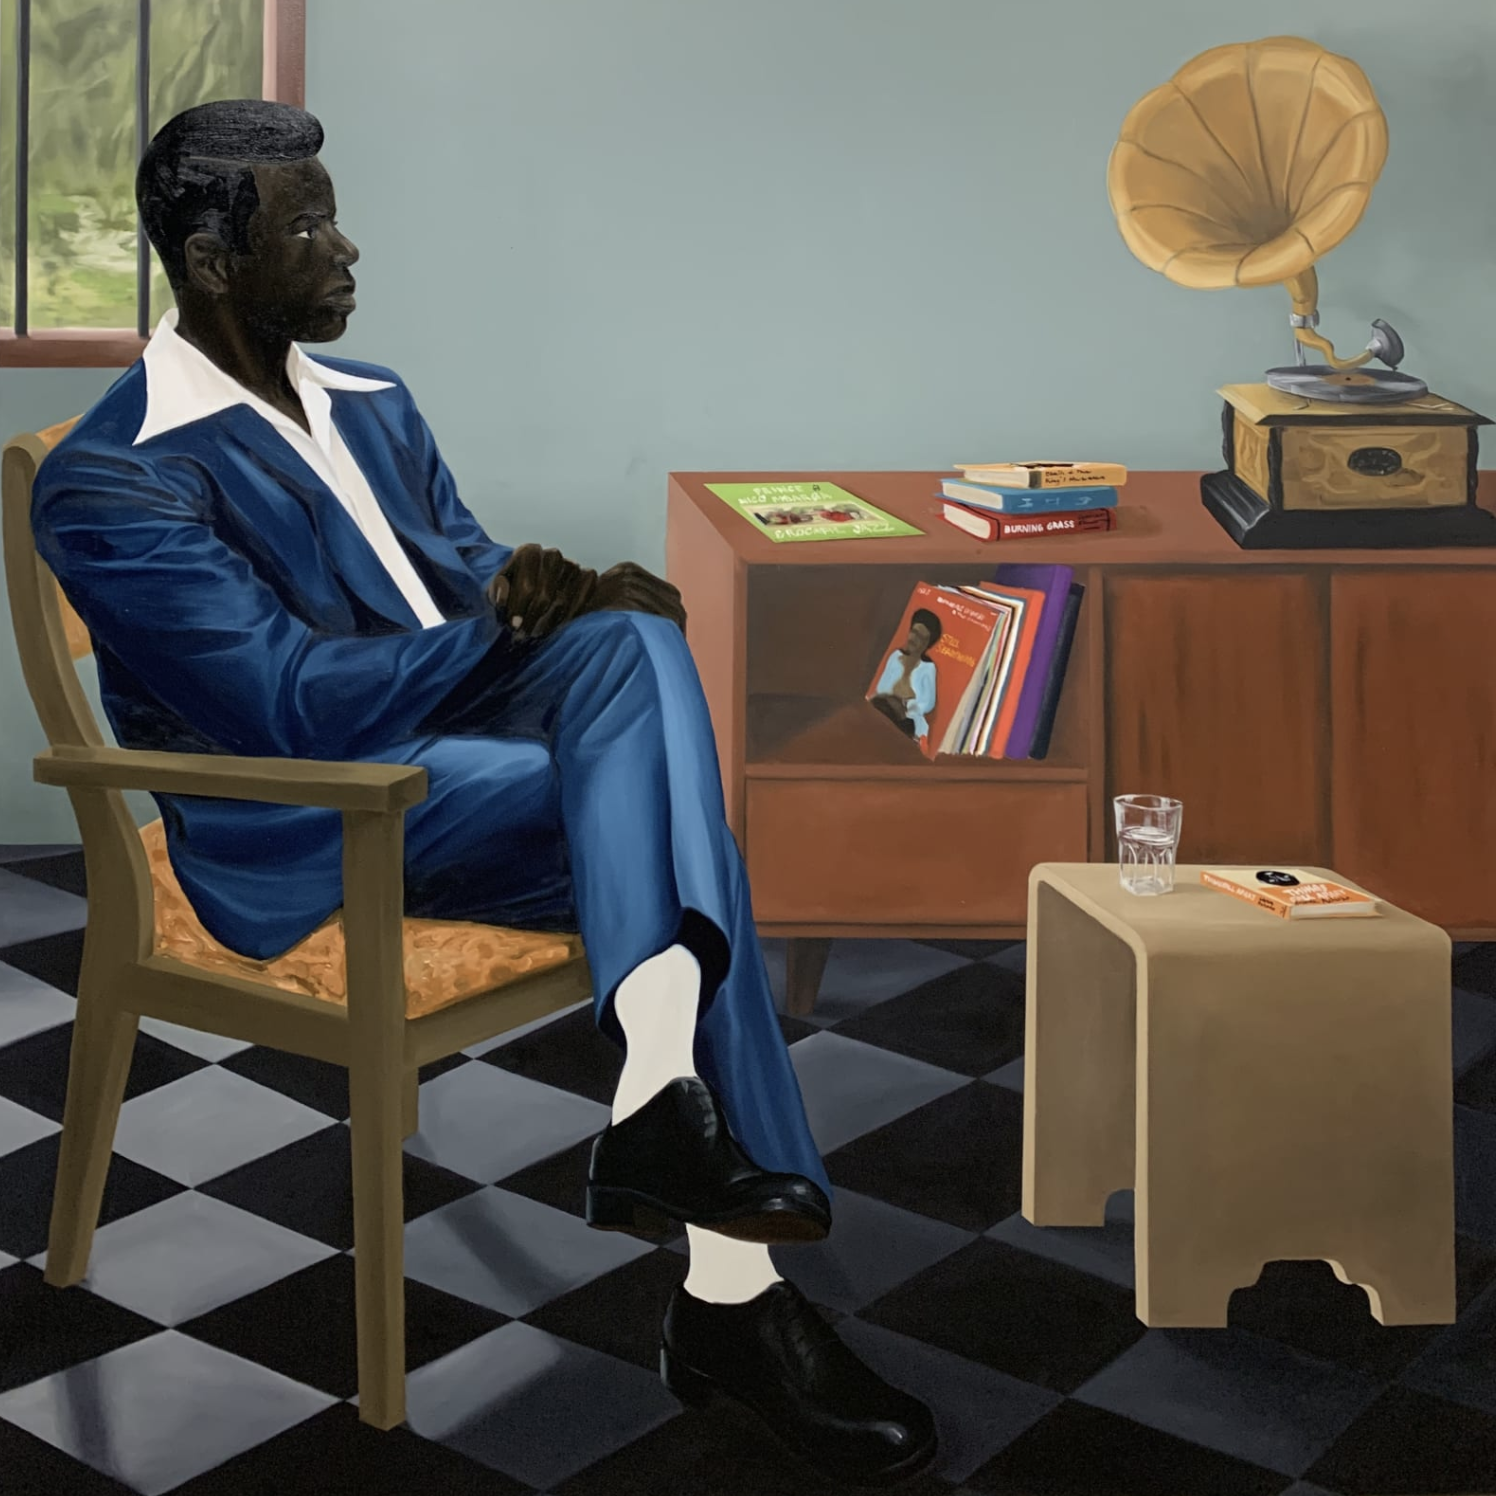 Peter Uka, Quiet Listening, 2020. Courtesy of the artist and Mariane Ibrahim.